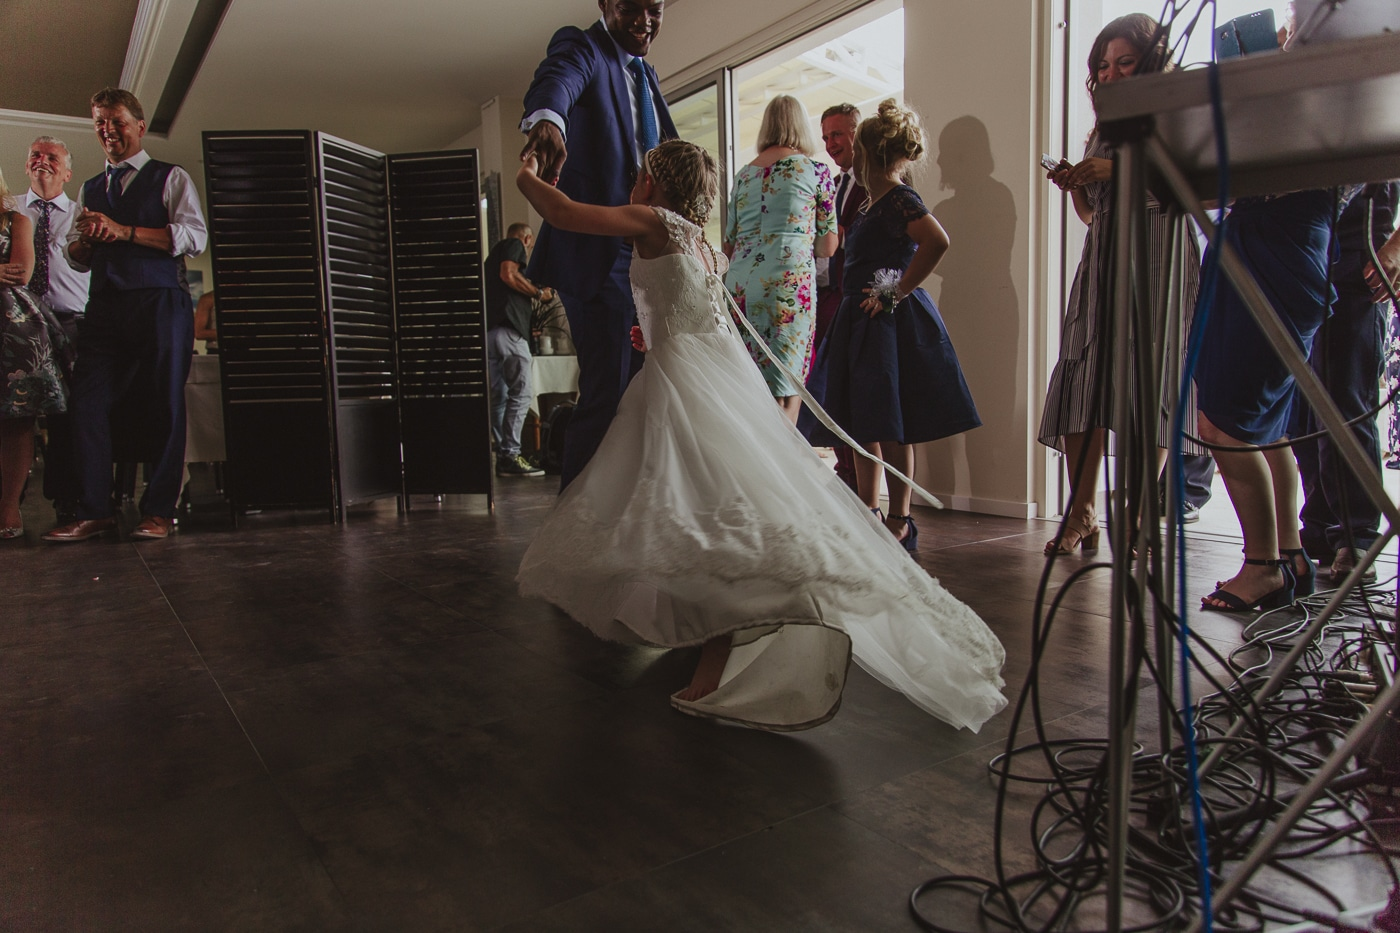 Young bridesmaid dancing letting her white dress spin on the wooden floor amongst the wedding guests by Joshua Wyborn